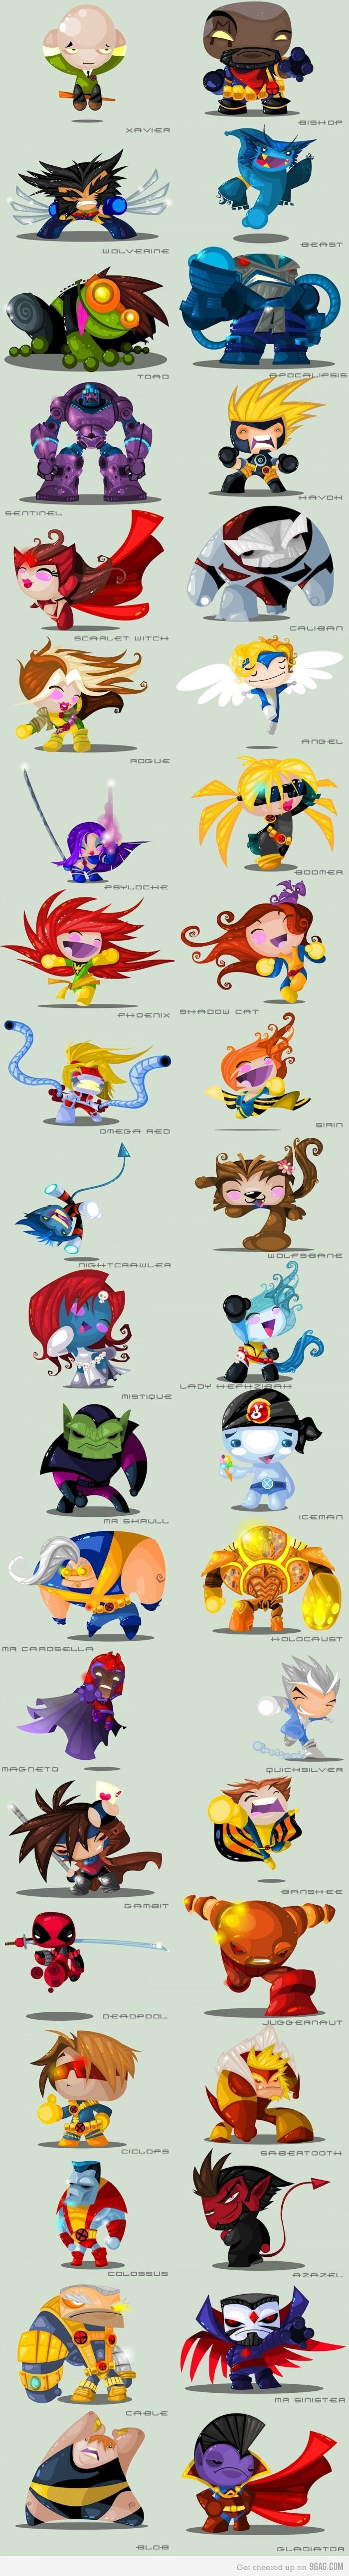 Even though the artist misspelled Cyclops, this art is still adorable.